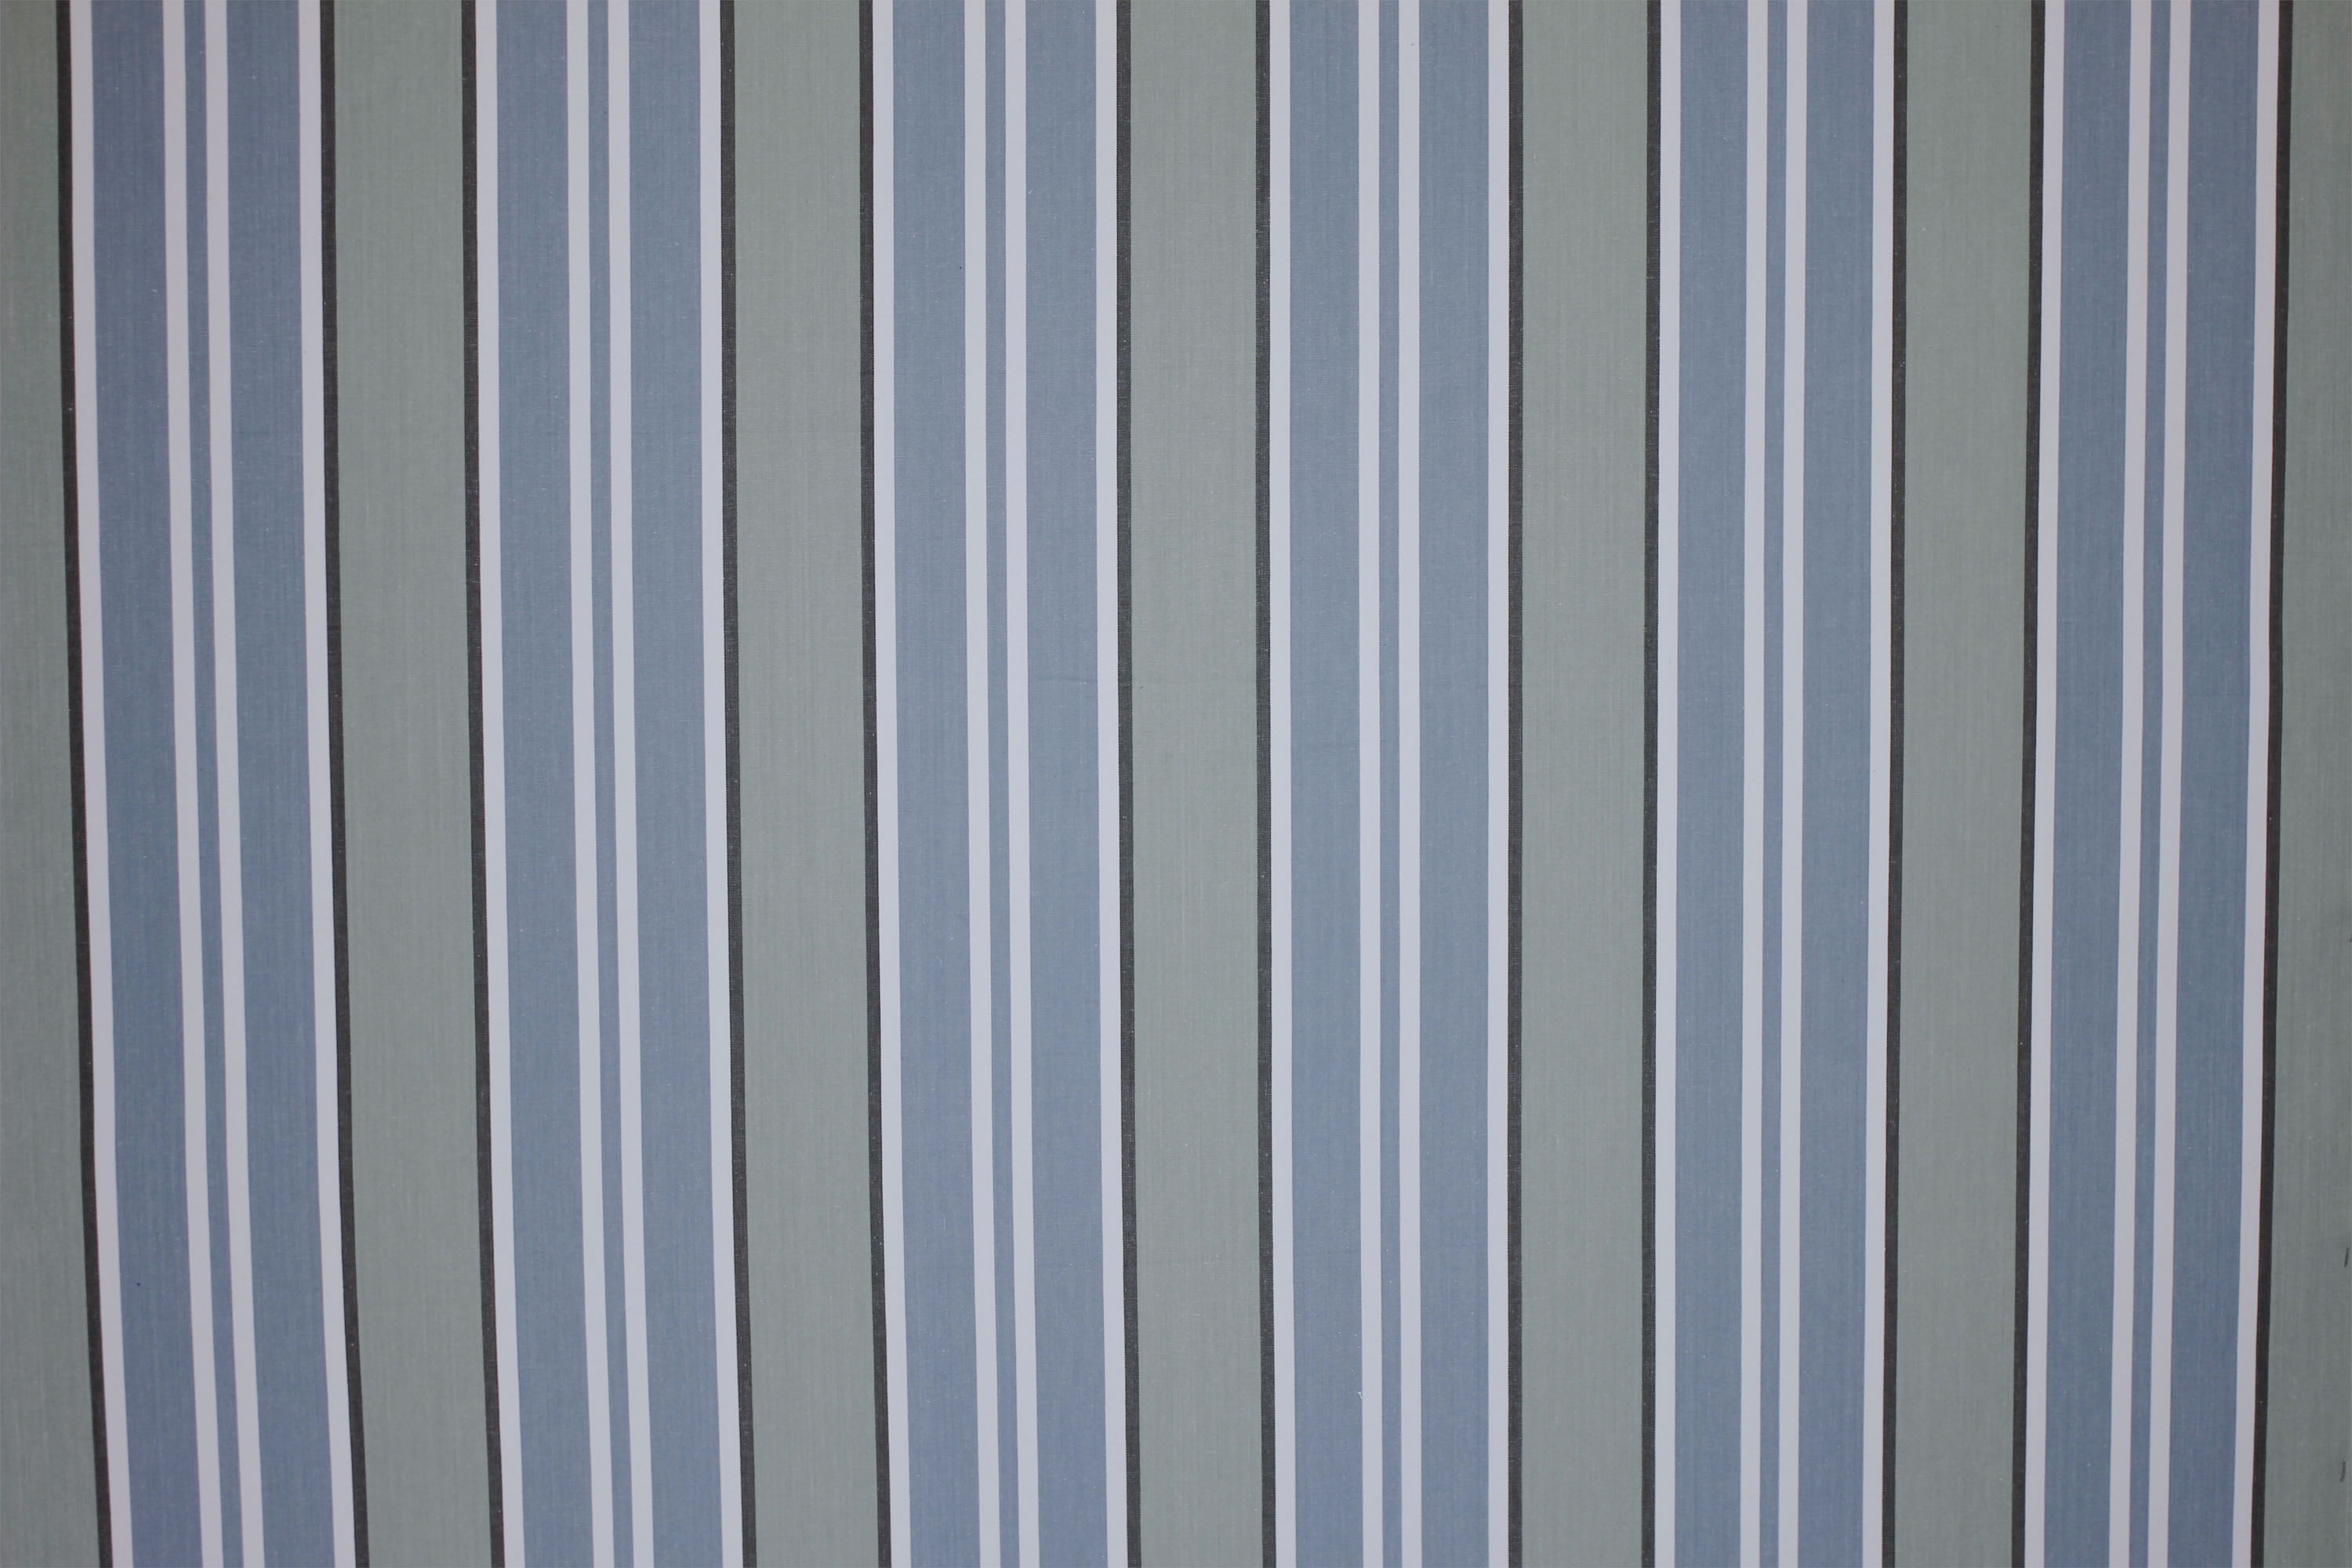 Teal Striped Fabrics | Stripe Cotton Fabrics |  Kendo Teal Stripe